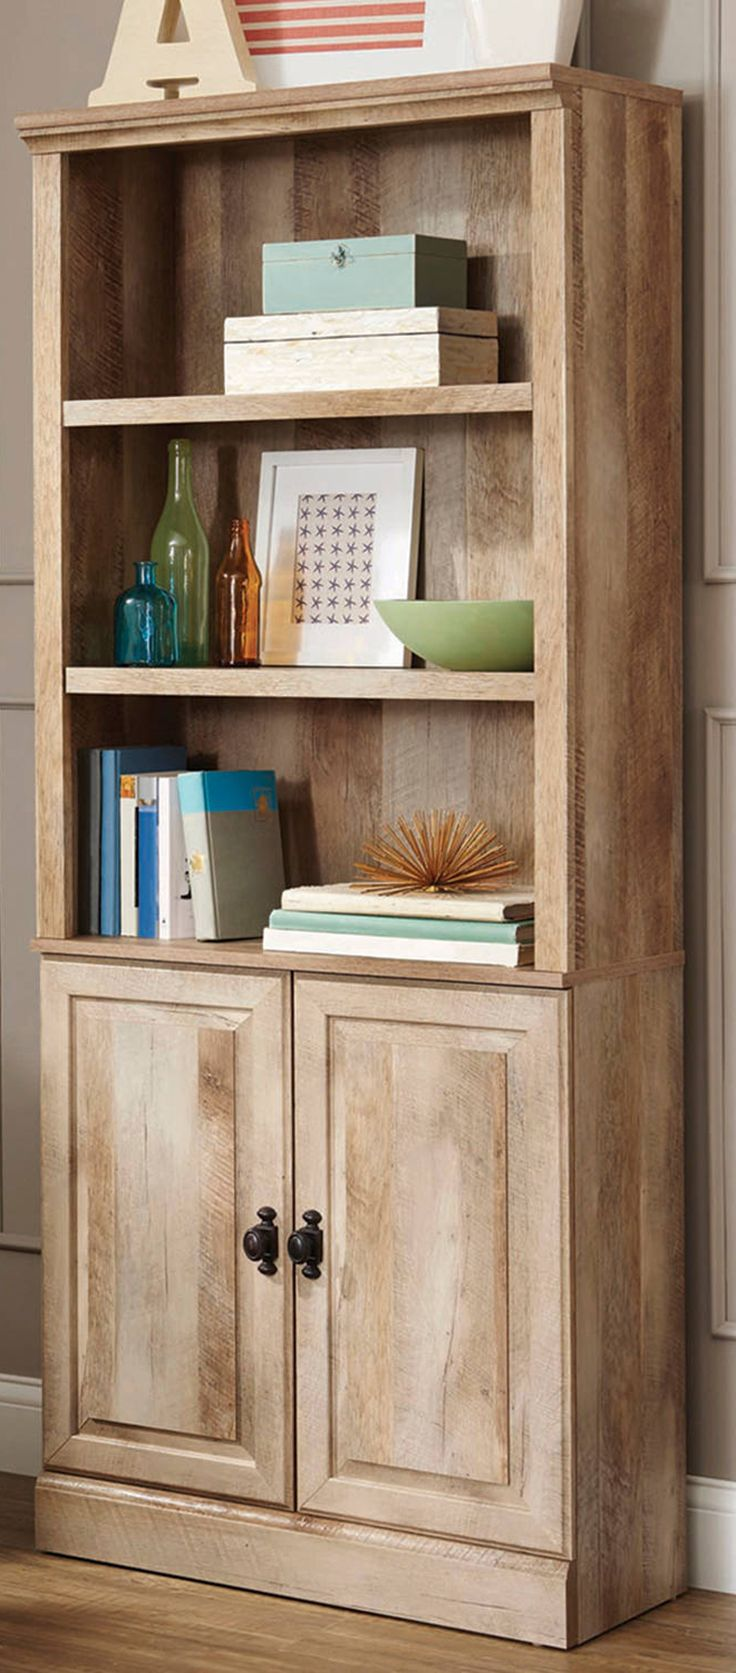 better homes and gardens crossmill bookcase with doors, multiple